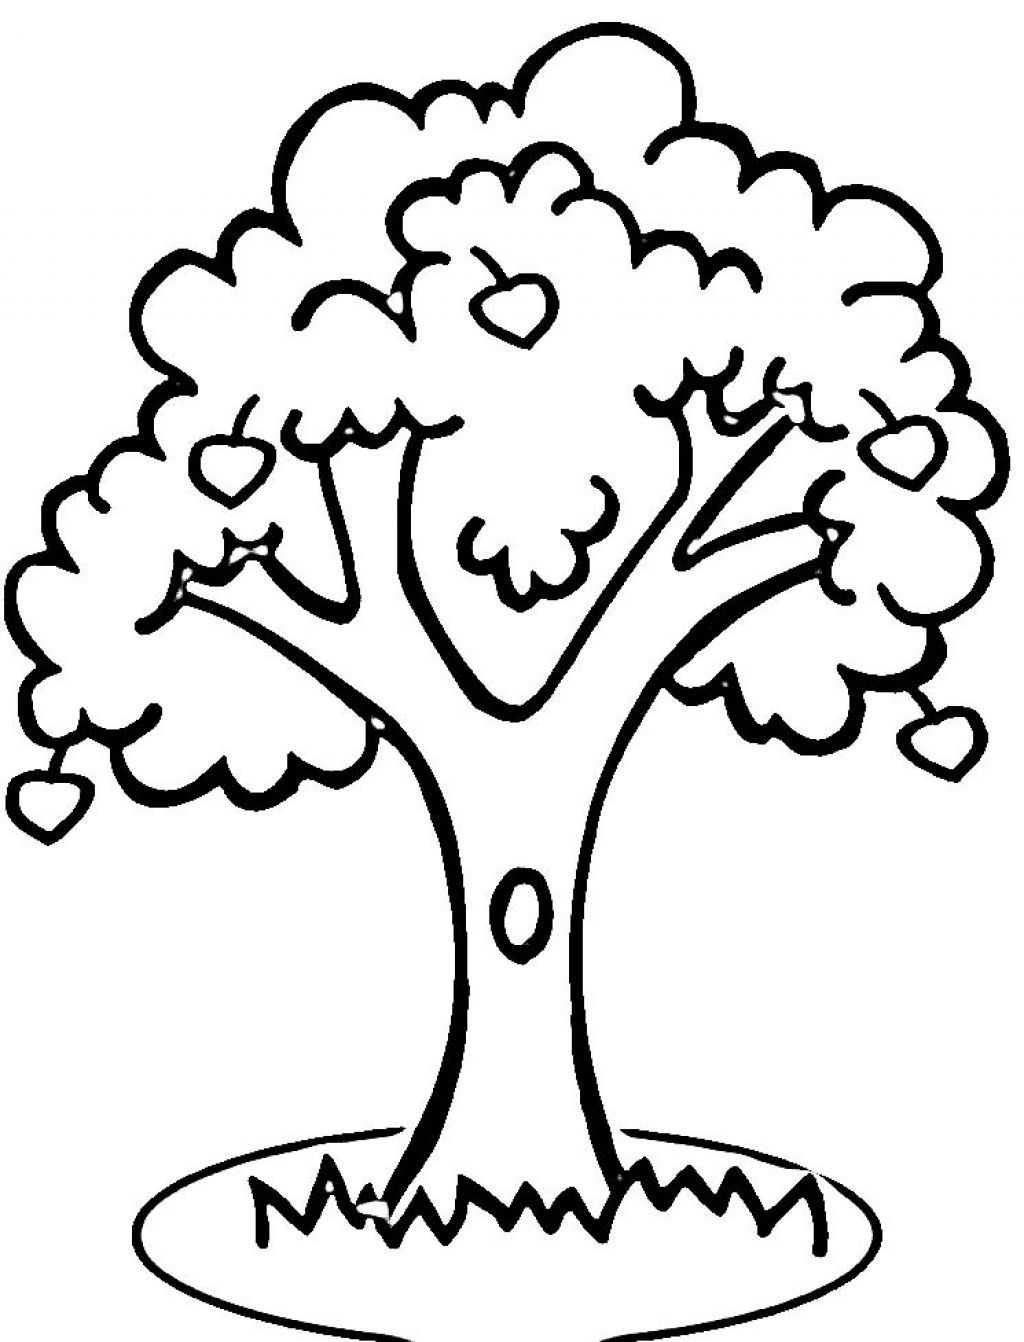 apple tree coloring sheet coloring page for kids apple tree coloring home tree apple sheet coloring 1 1